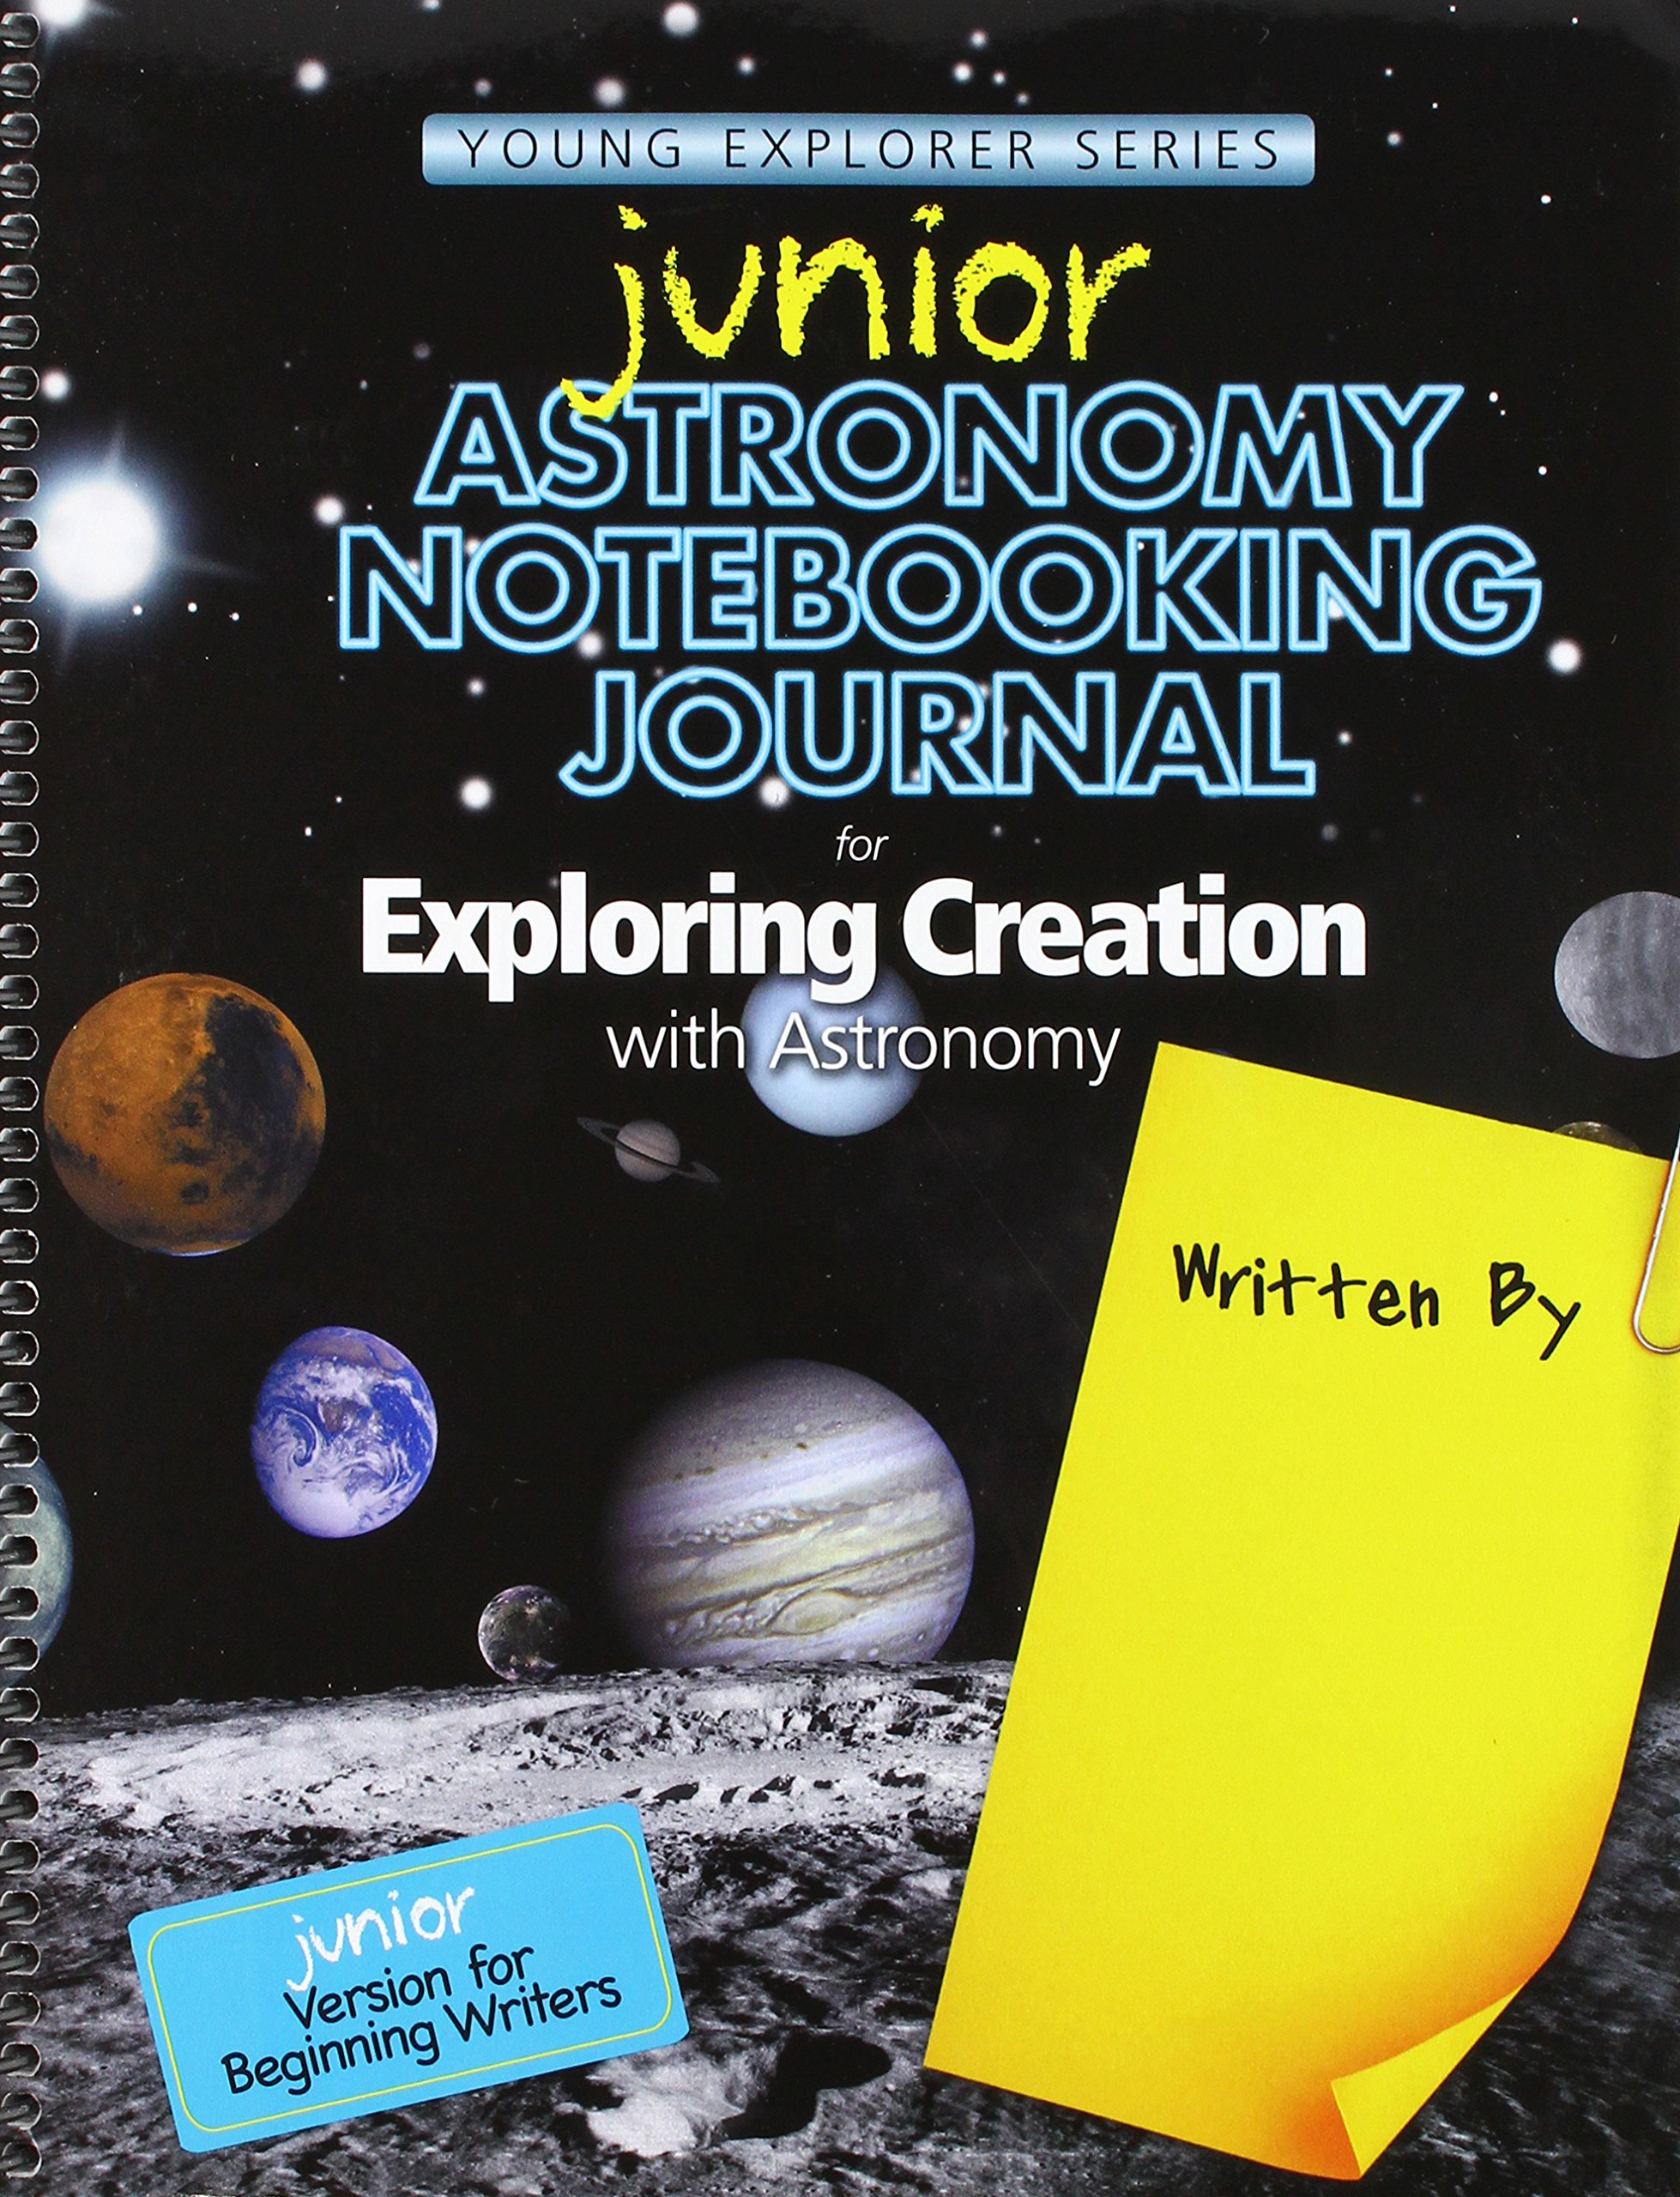 Junior Astronomy Notebooking Journal for Exploring Creation with ...